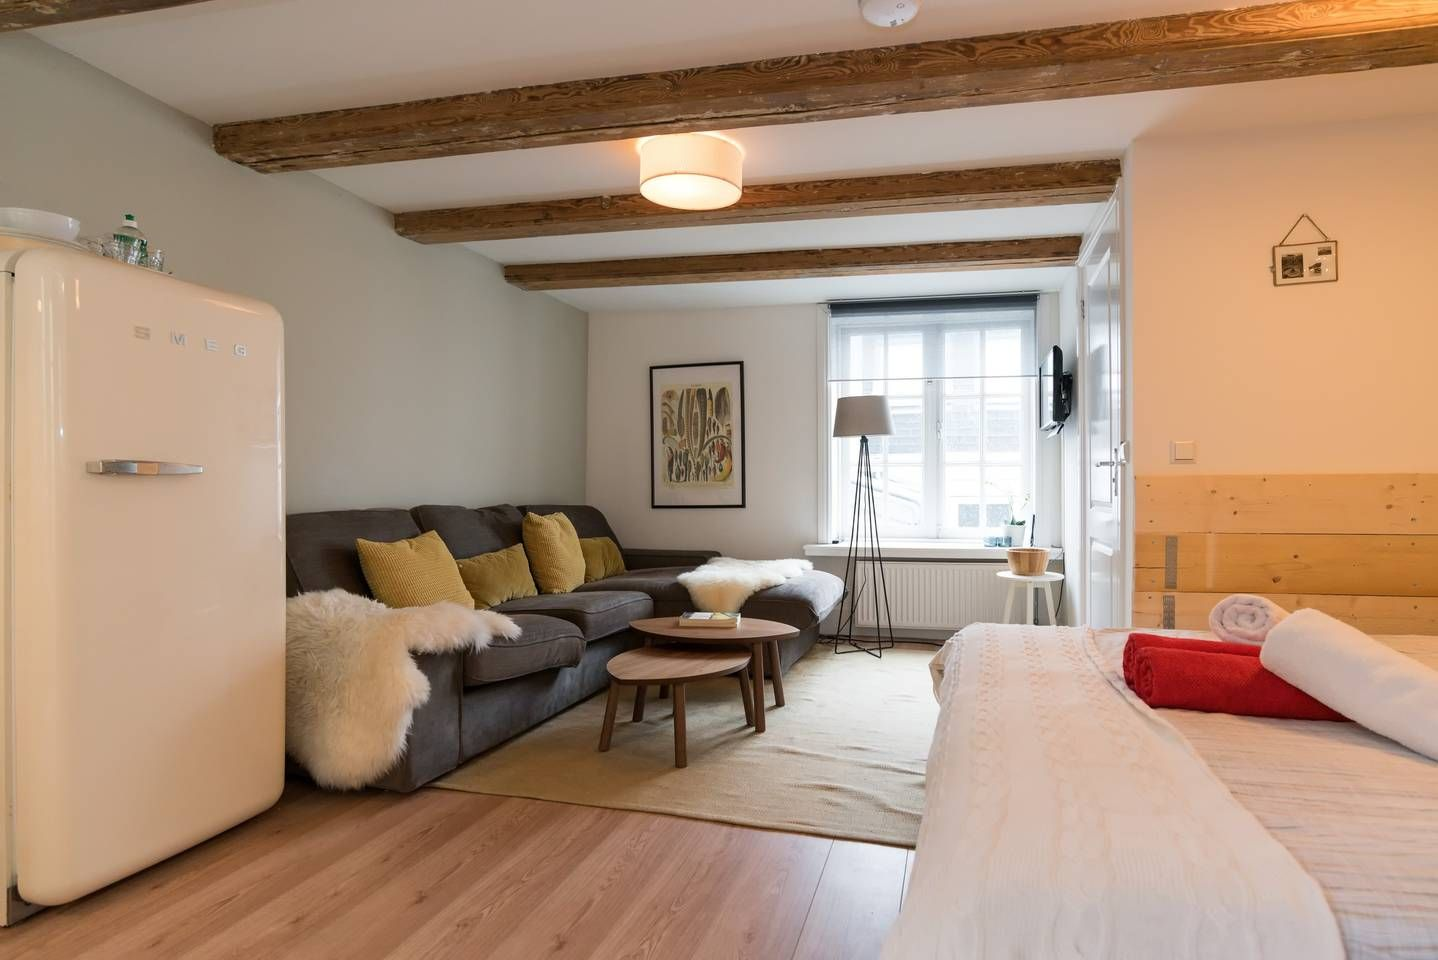 Yucca Apartment Bed And Breakfasts For Rent In Amsterdam Bed